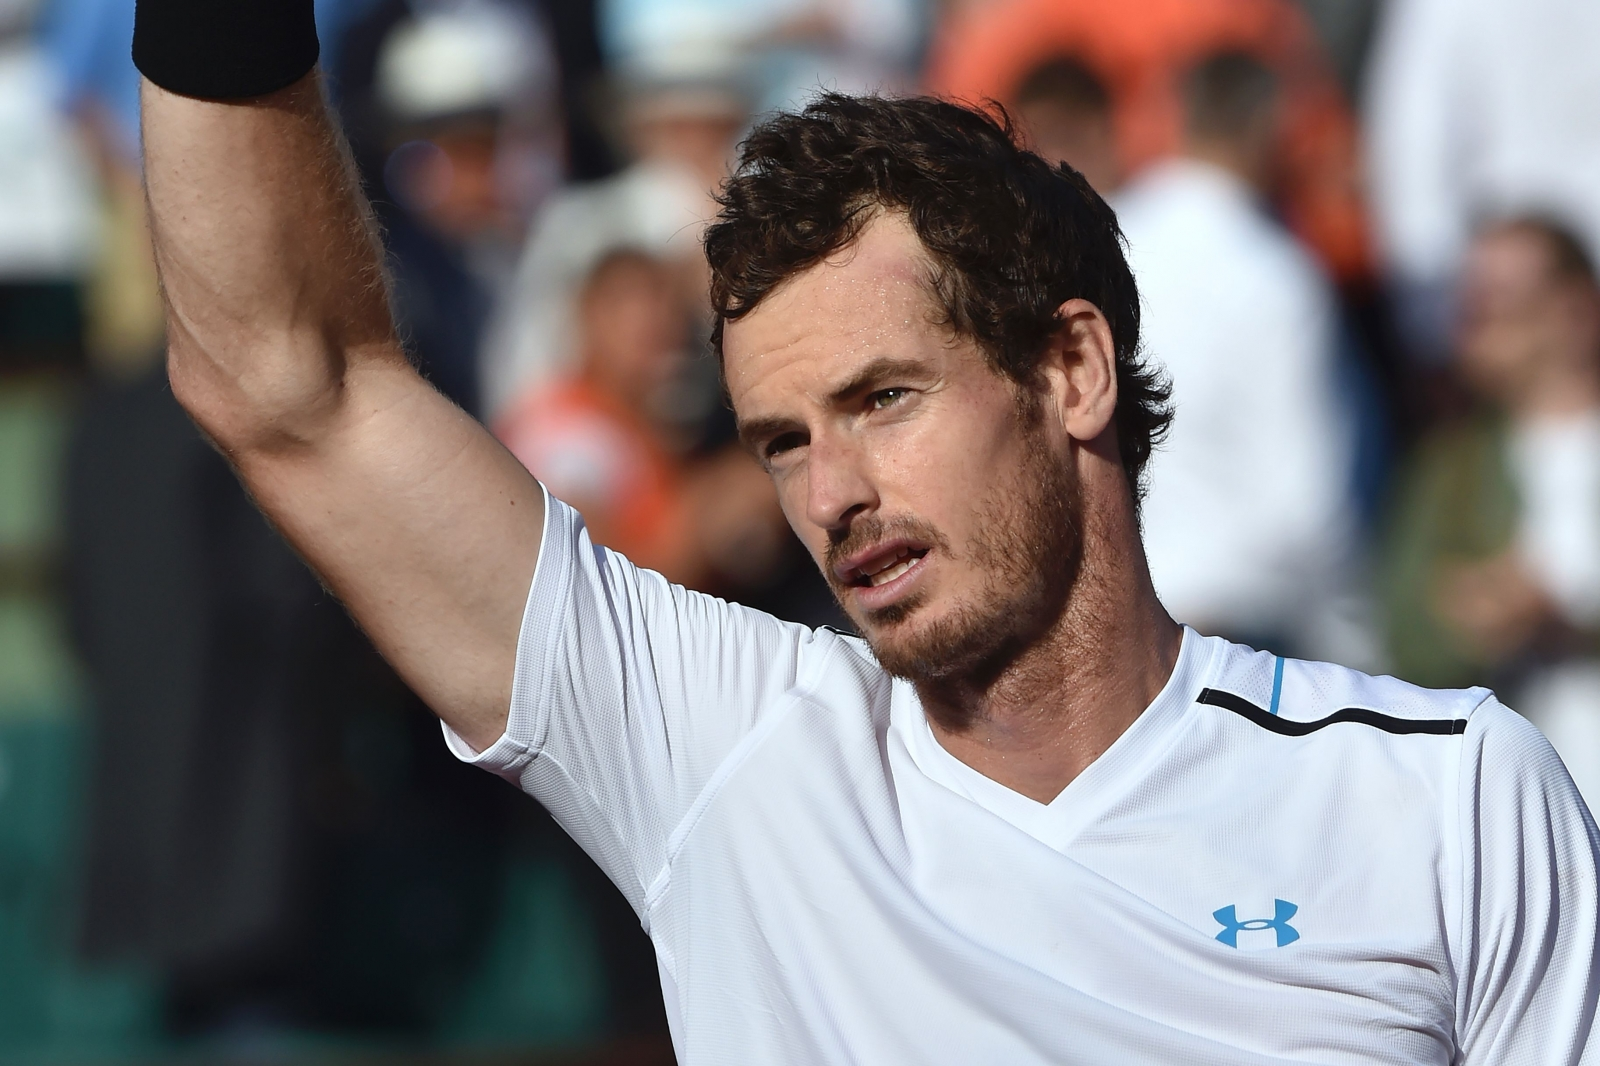 Illness and injury played part in Andy Murray's struggles, says Ivan Lendl